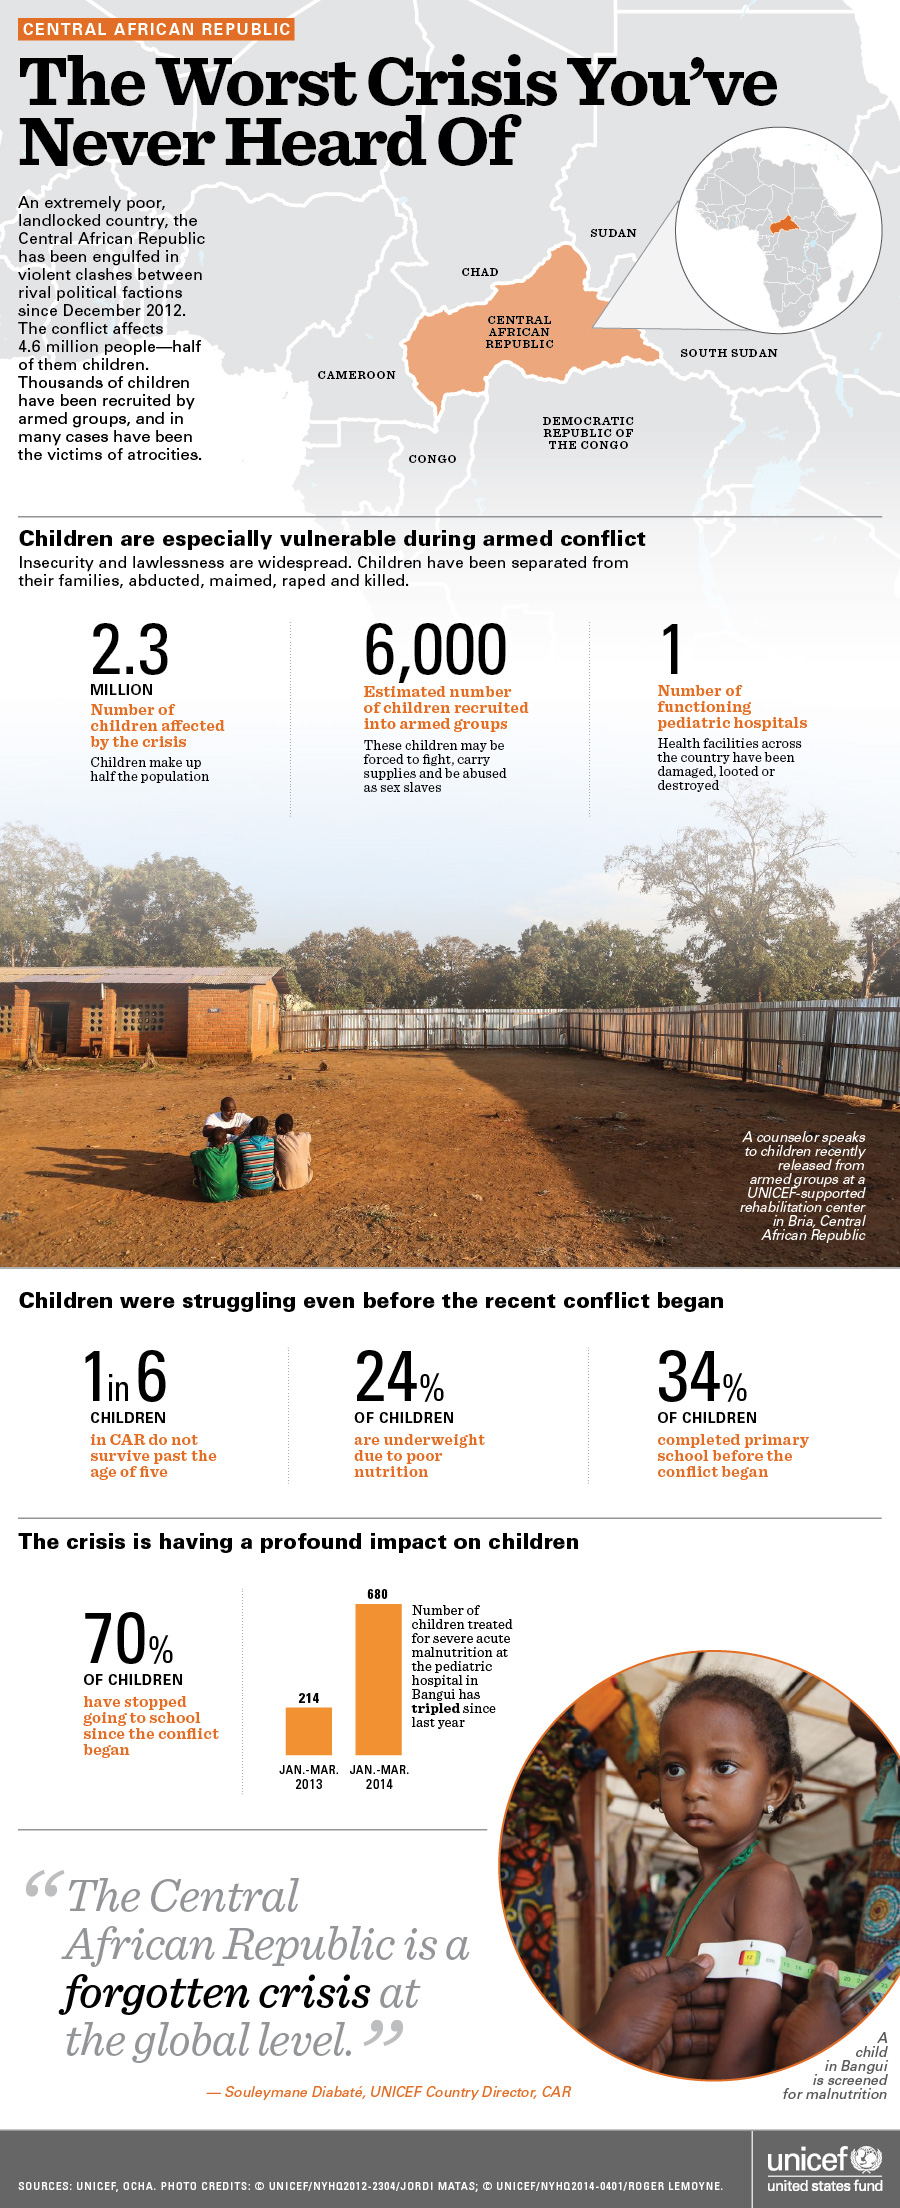 Infographic: The Worst Crisis You've Never Heard Of - Central African Republic